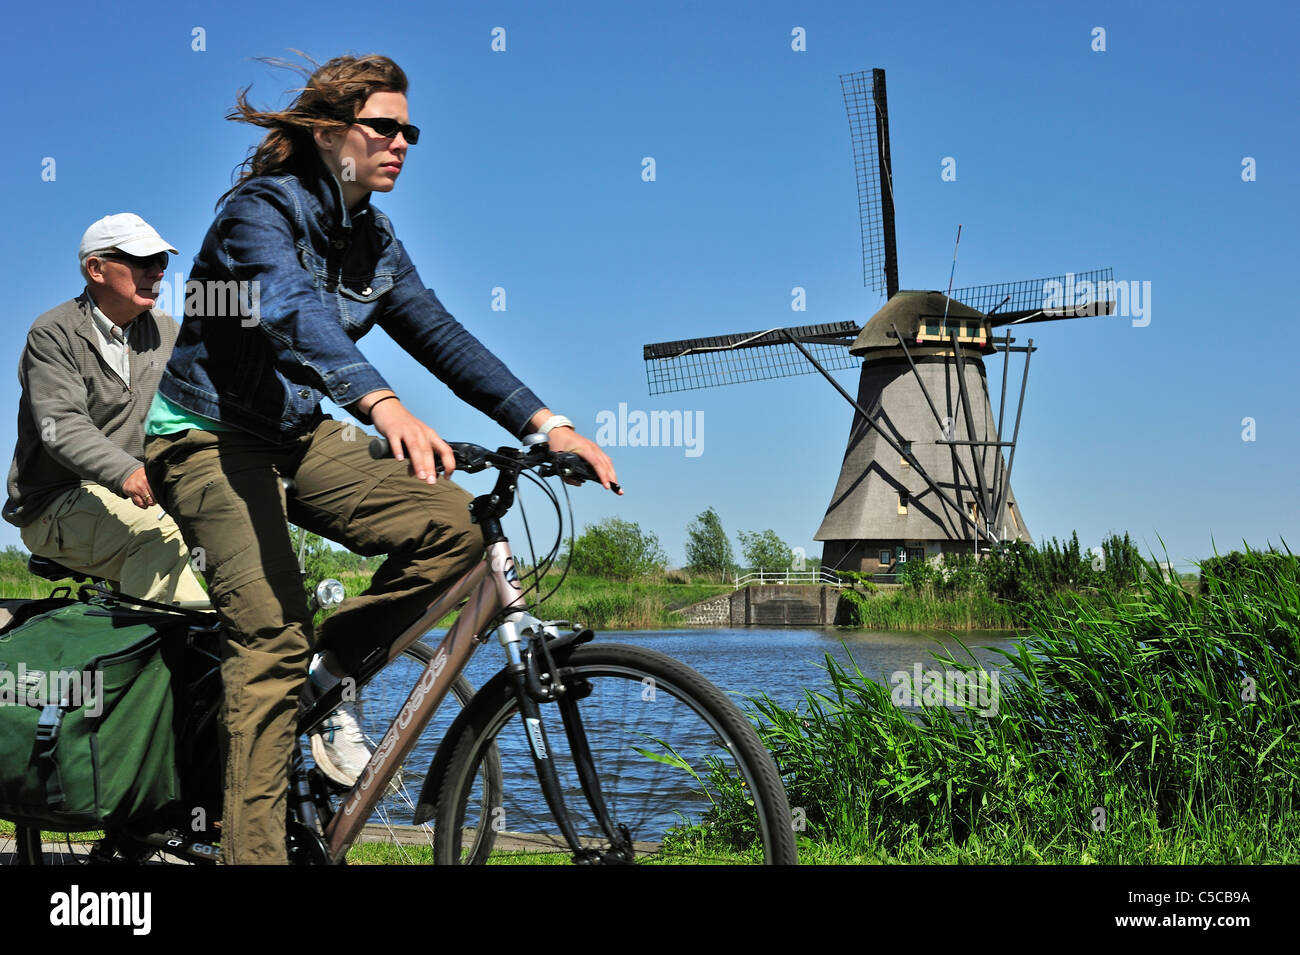 Cyclists riding bikes and thatched windmill at Kinderdijk, a UNESCO World Heritage Site at South Holland, the Netherlands - Stock Image